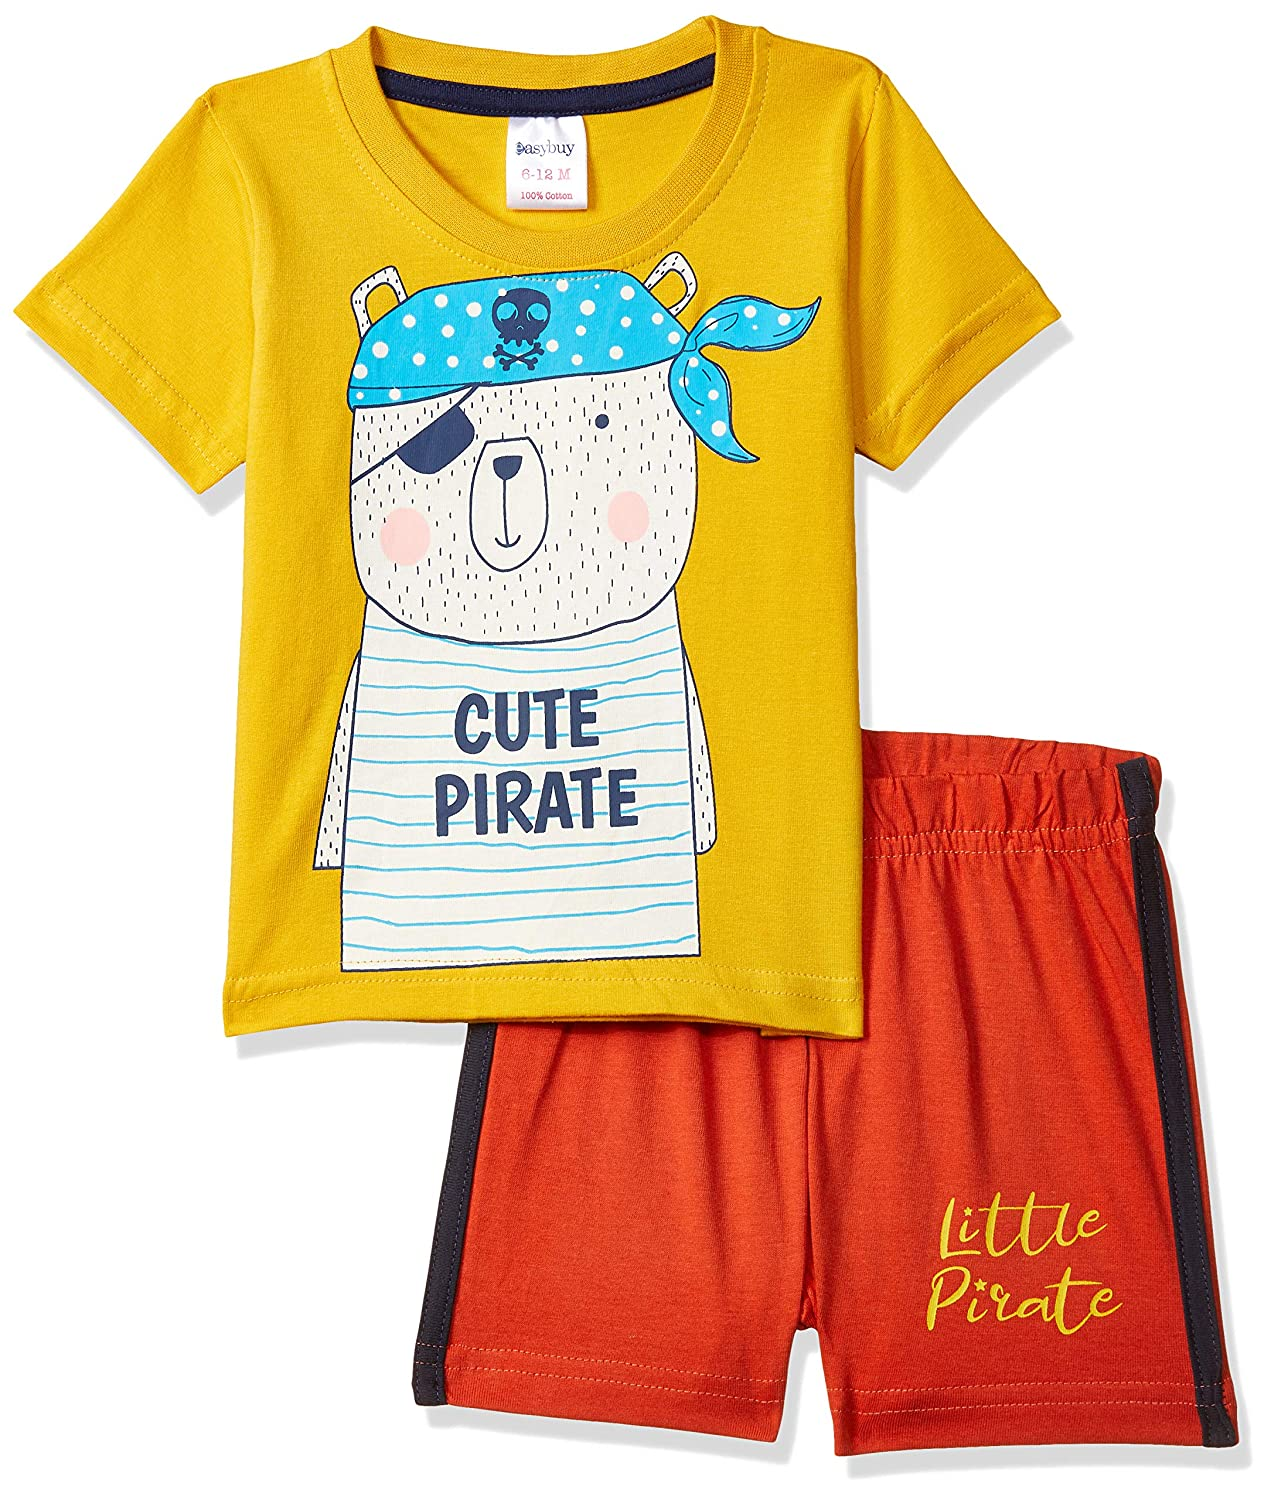 EASYBUY Baby Boy's Clothing Sets